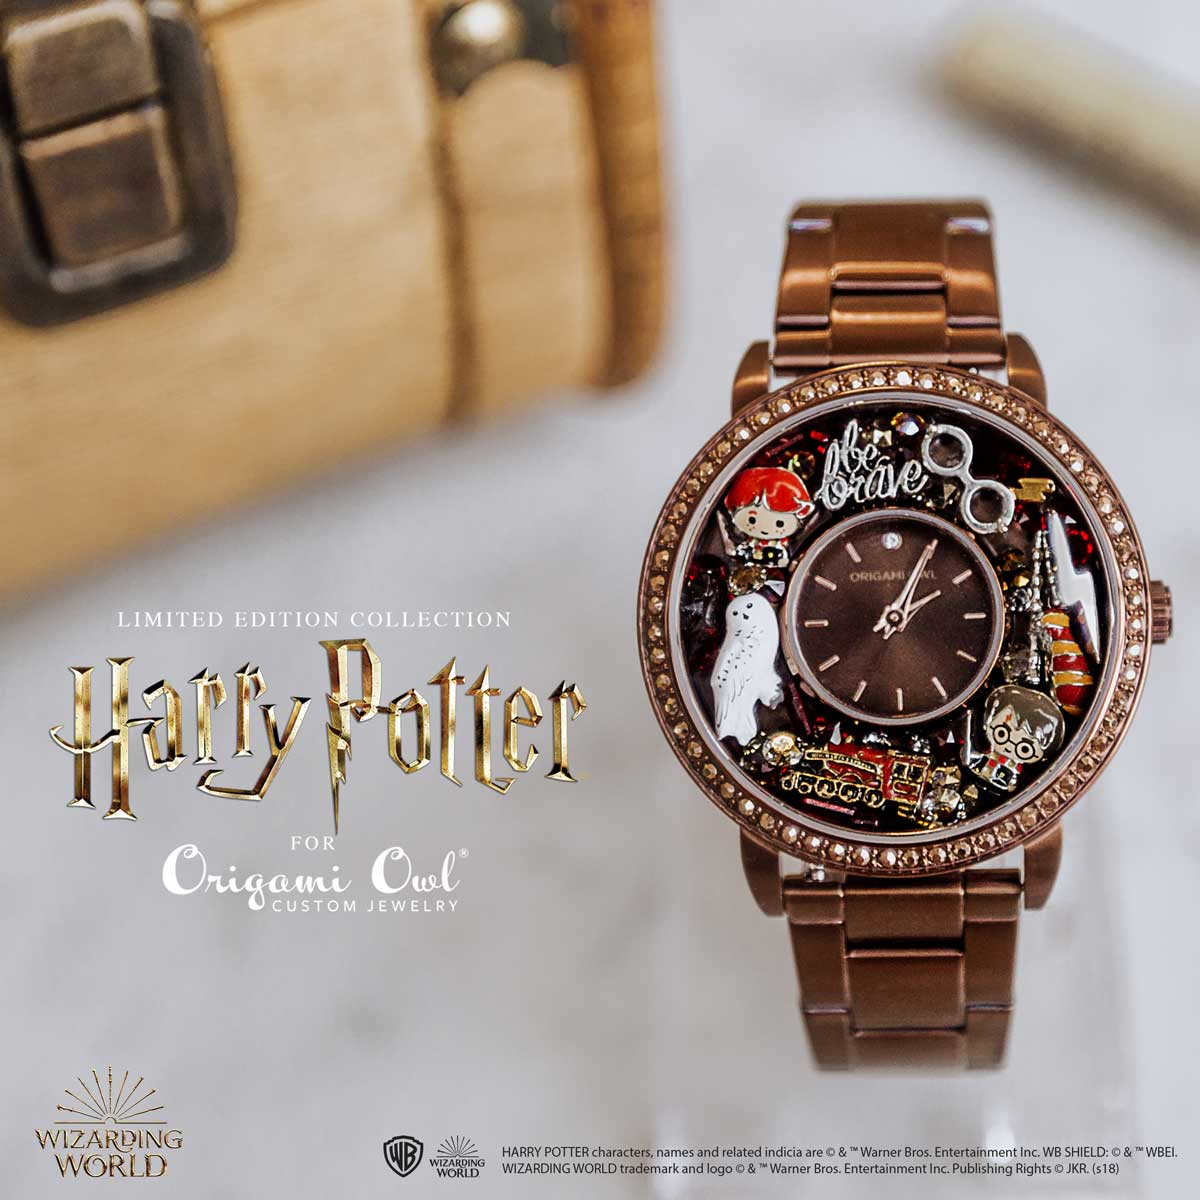 Harry Potter Jewellery watch origami Owl